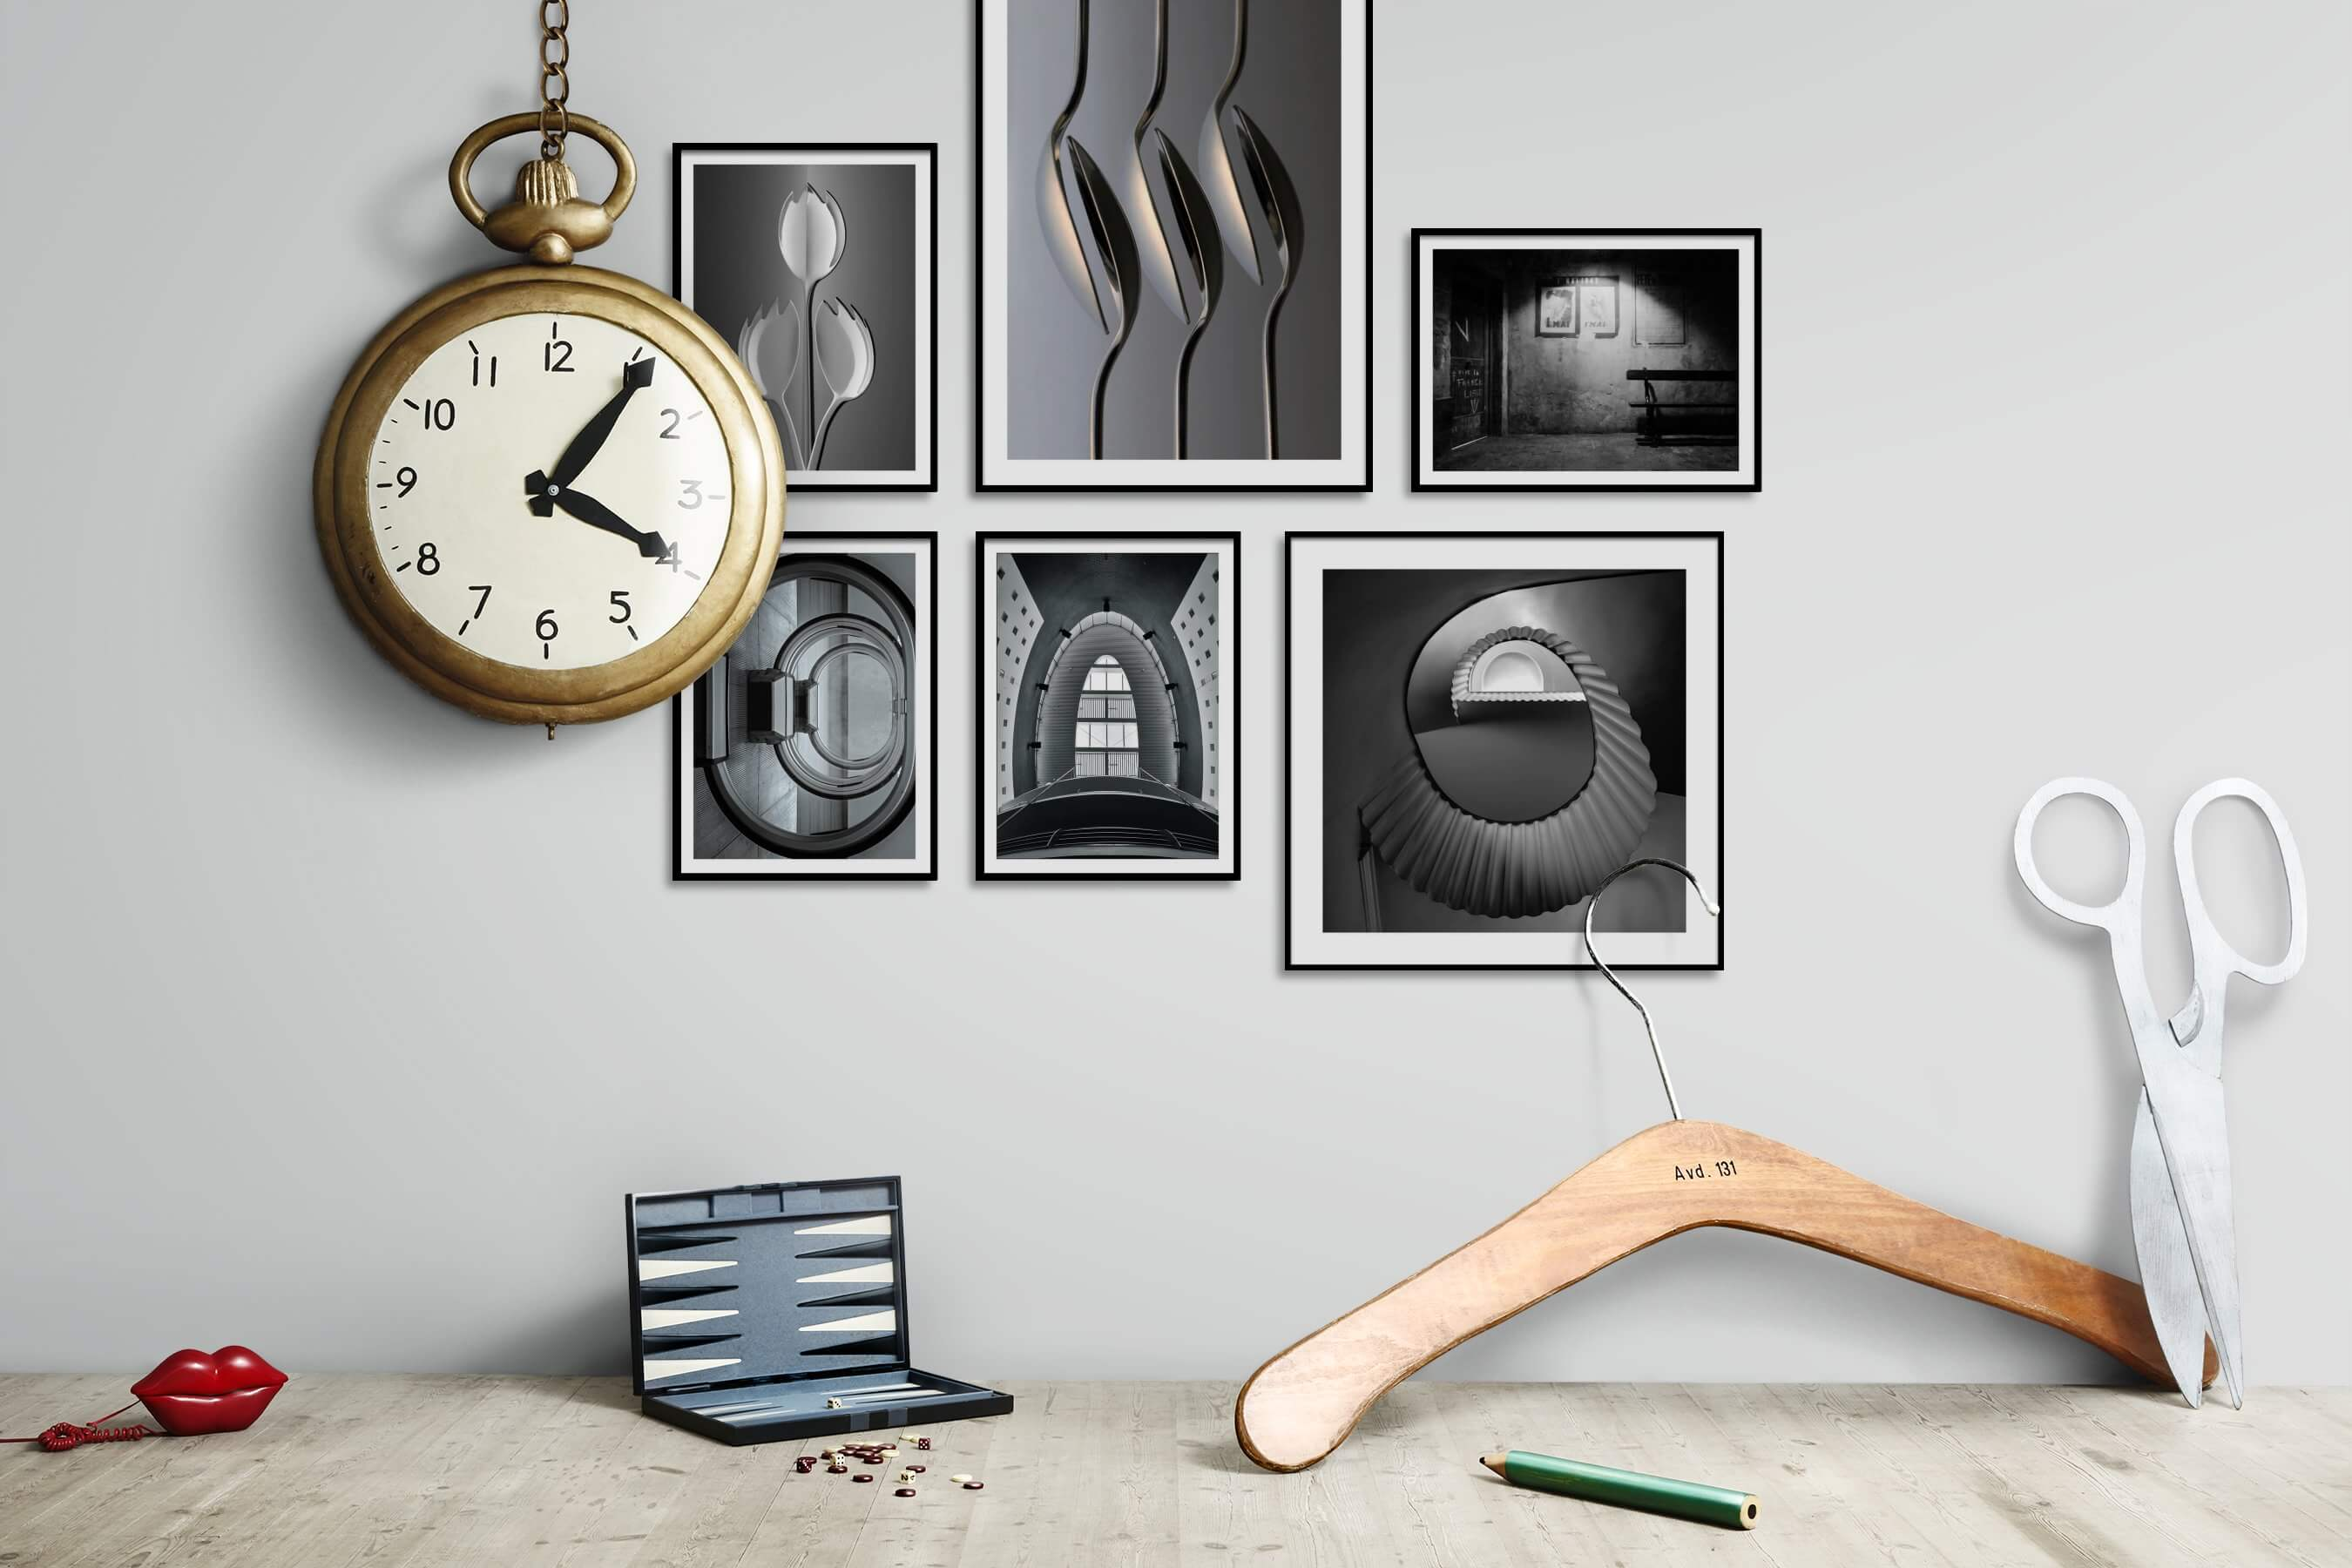 Gallery wall idea with six framed pictures arranged on a wall depicting Black & White, For the Minimalist, Flowers & Plants, For the Moderate, and Vintage